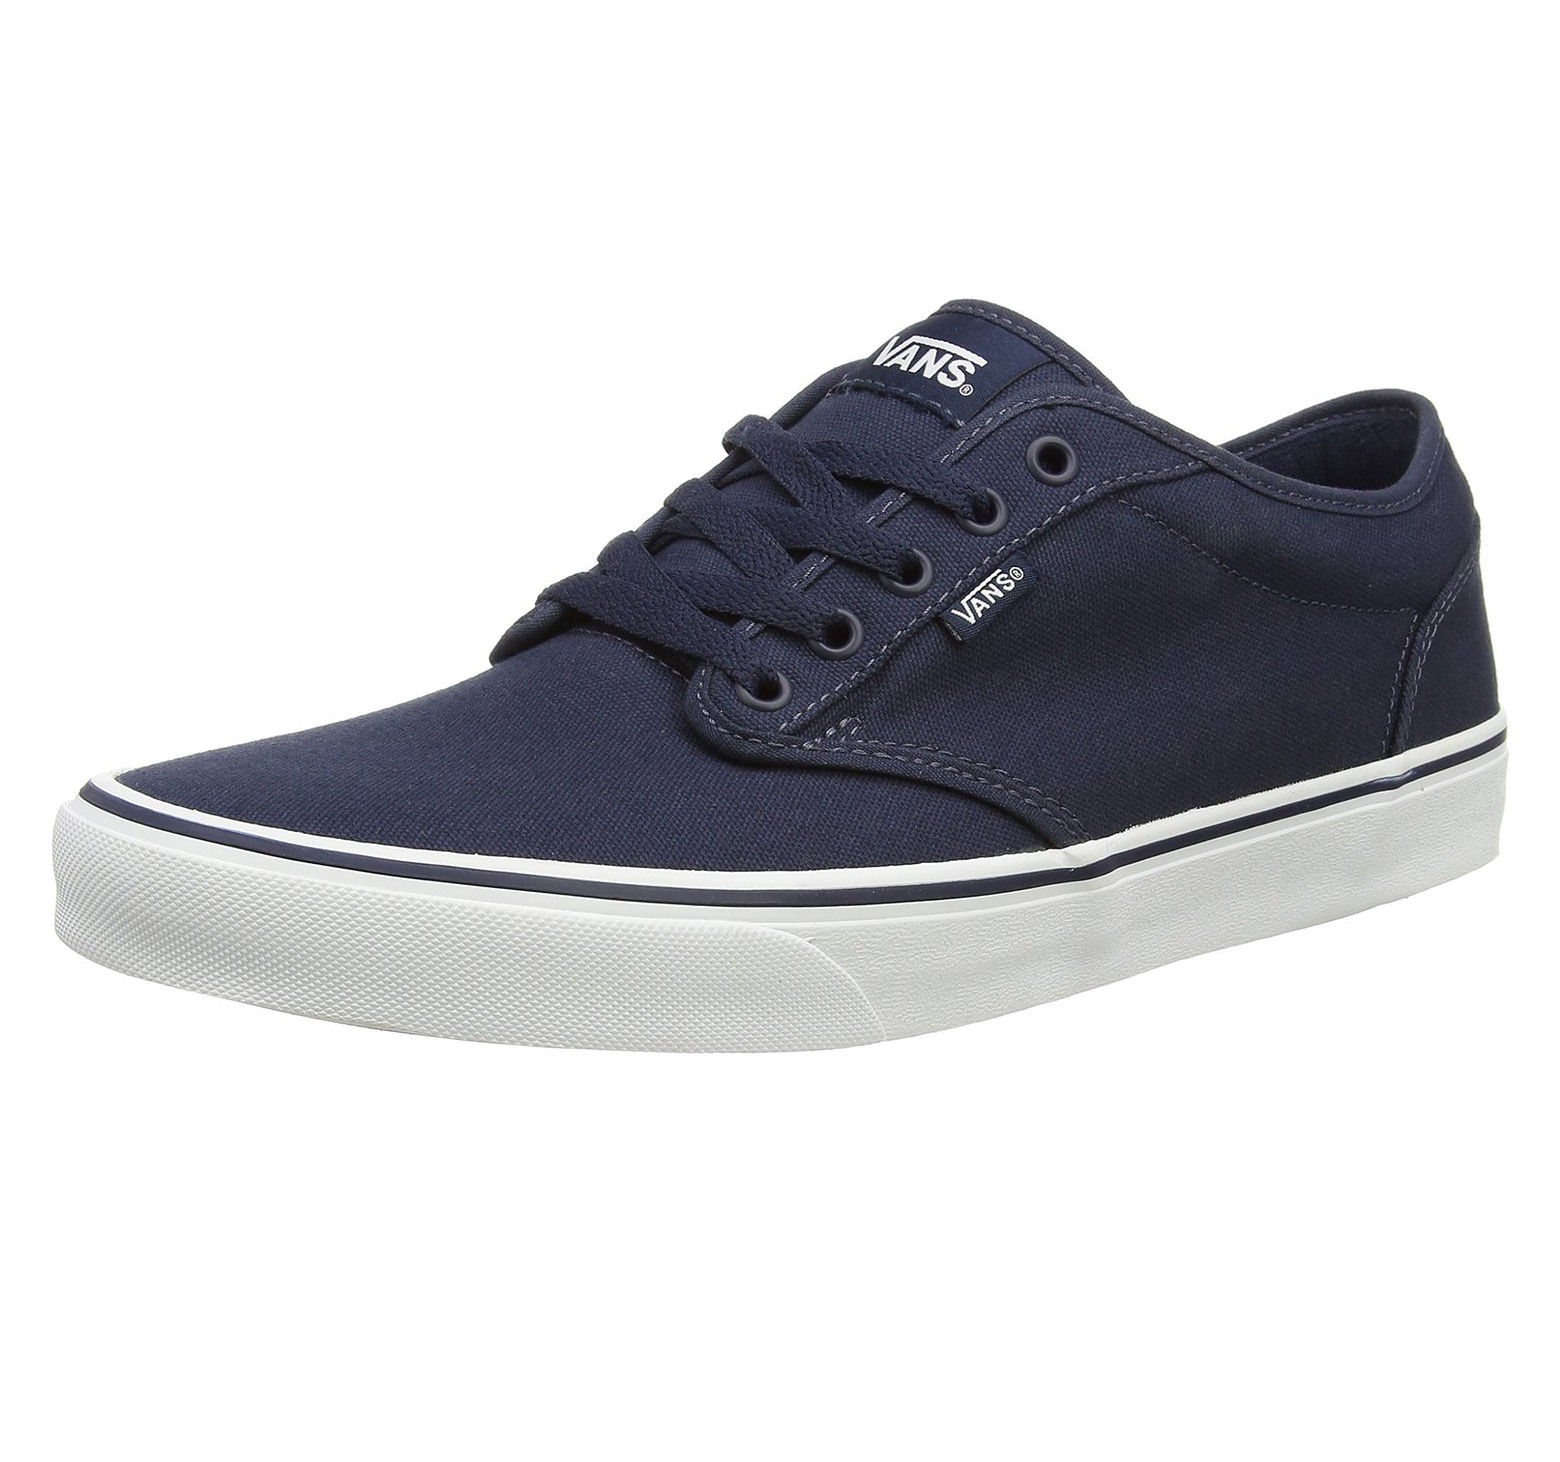 bf8222f3f1 Click on the Image to Enlarge. More Details. These stylish Vans Atwood Mens  Canvas Trainers ...